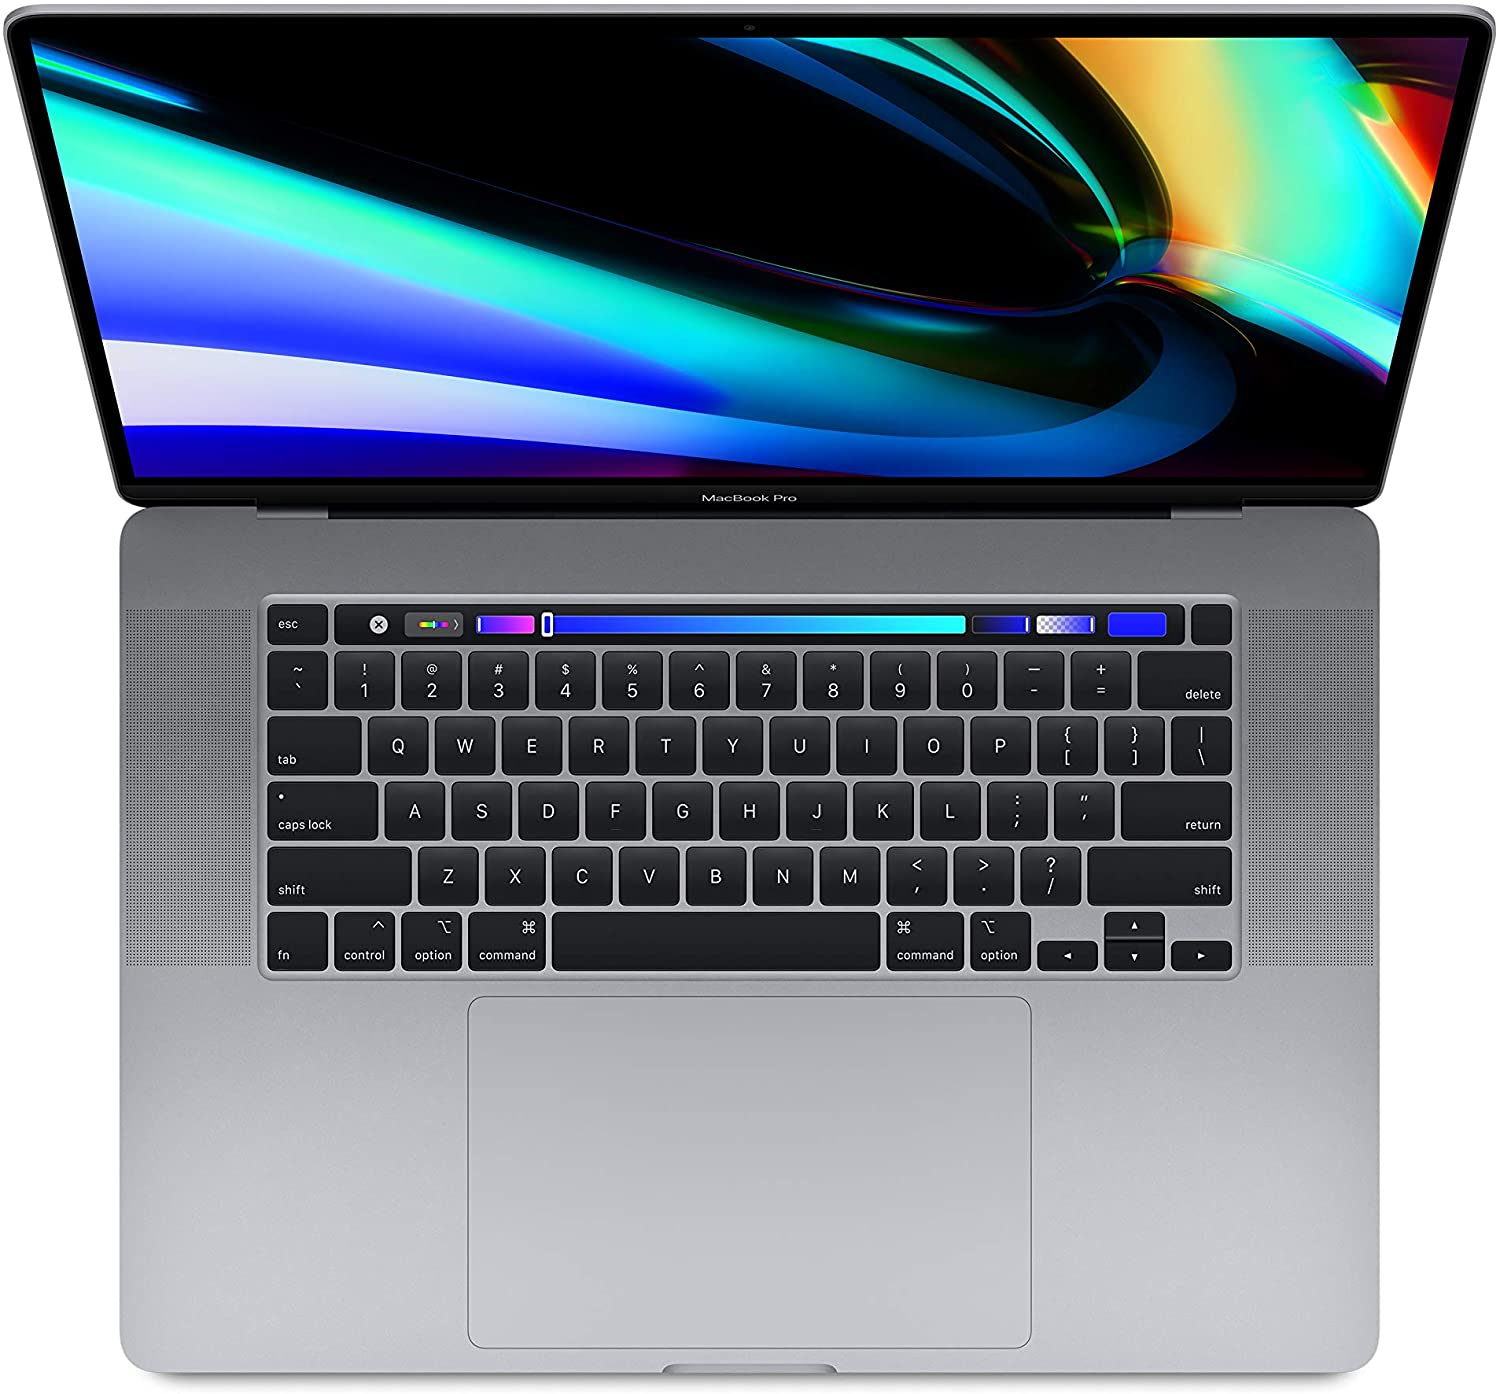 best laptop for programming for students, new apple macbook pro 16 inch review,new apple macbook pro (16-inch 16gb ram 512gb storage),new apple macbook pro (16-inch 16gb ram 1tb storage),new apple macbook pro (16-inch 16gb ram,apple new macbook pro 2019 16 inch,apple macbook pro 16 inch,apple macbook pro 16 inch 2019,apple macbook pro 16 inch price in india,apple macbook pro 16 inch accessories,apple macbook pro 16 inch amazon,apple macbook pro 16 inch australia,apple macbook pro 2019 16 inch accessories,apple macbook pro 16 inch black friday,apple macbook pro 16 inch buy,apple macbook pro 16 inch best price,apple macbook pro 16 inch black friday deals,apple macbook pro 16 inch best buy,apple macbook pro 16 inch battery,apple macbook pro 16 inch benchmark,apple macbook pro 16 inch bag,apple macbook pro 16 inch case,apple macbook pro 16 inch cover,apple macbook pro 16 inch charger,apple macbook pro 16 inch canada,apple macbook pro 16 inch cyber monday,apple macbook pro 16 inch currys,apple macbook pro 16 inch color,apple macbook pro 16 inch cost,apple macbook pro 16 inch deals,apple macbook pro 16 inch dimensions,apple macbook pro 16 inch docking station,apple macbook pro 16 inch discount,apple macbook pro 16 inch display,apple macbook pro 16 inch dubai,apple macbook pro 16 inch release date,apple macbook pro 16 inch launch date,apple macbook pro 16 inch egypt,apple macbook pro 16 inch for sale, amazali.com